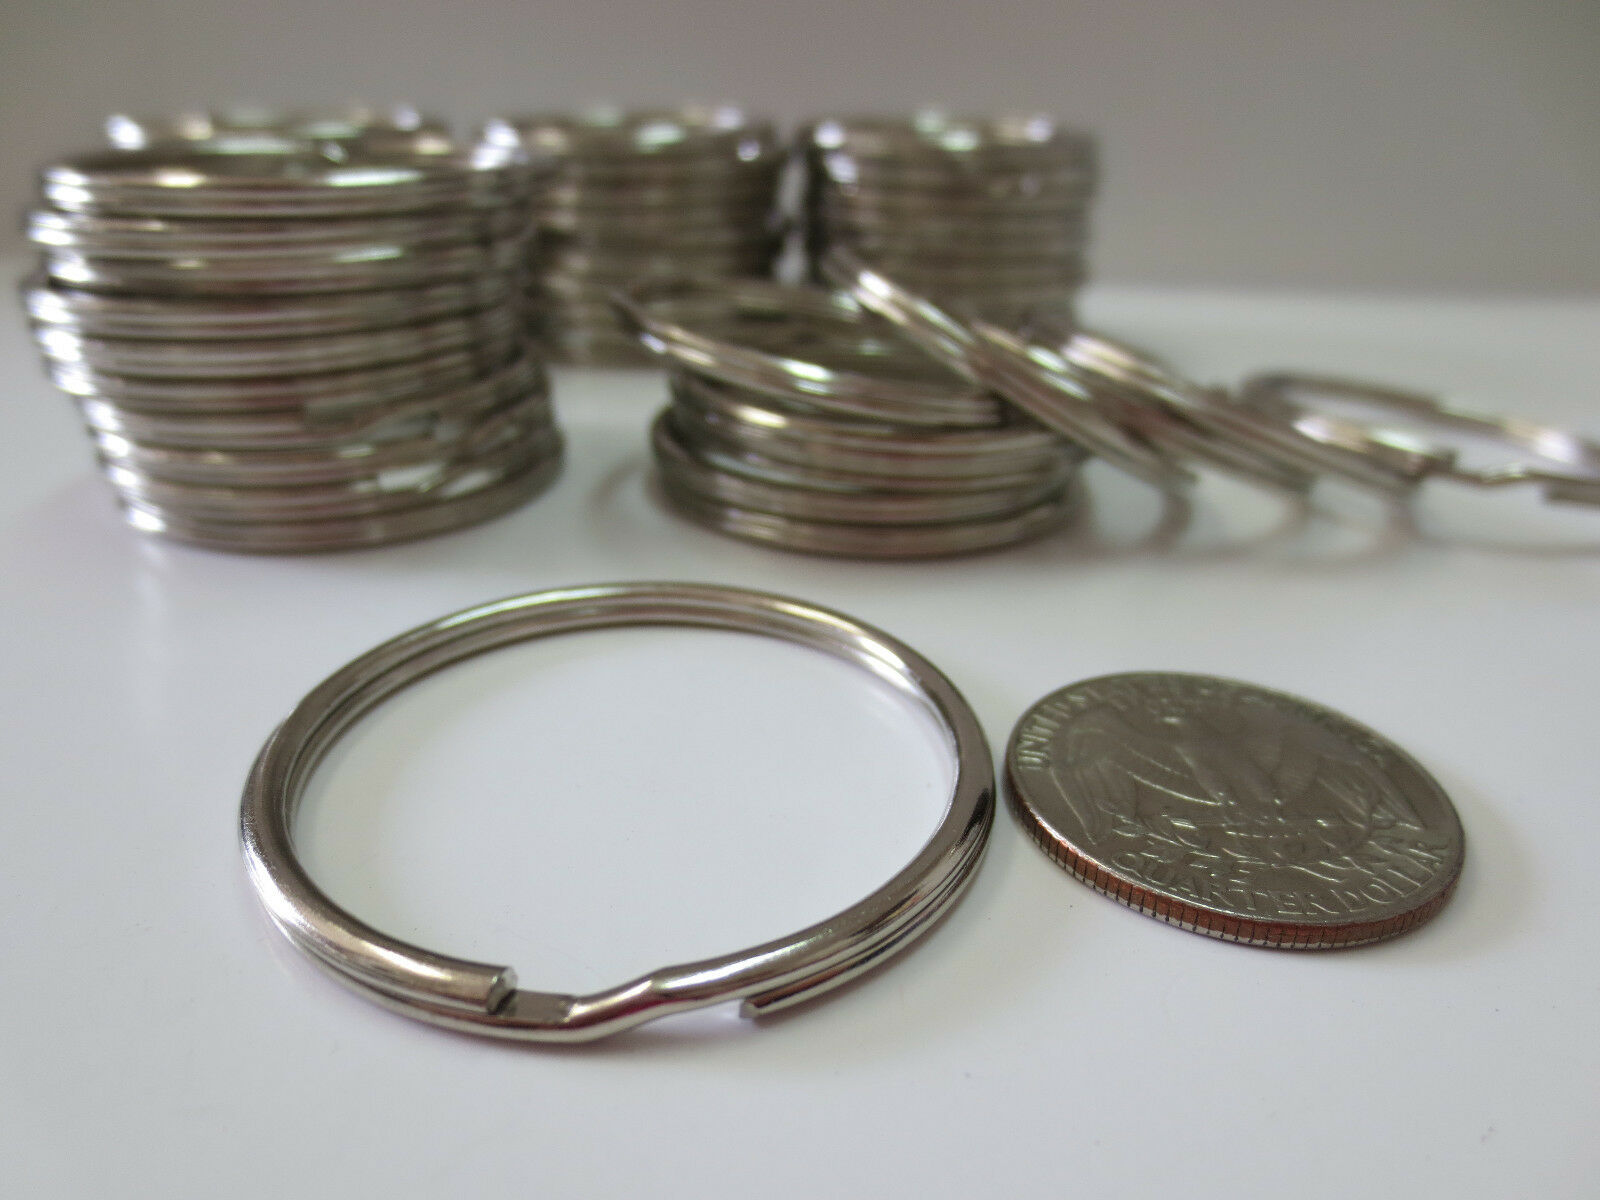 Wholesale Lot 50020010010 Split Rings Keyrings 15 1 2 Of 3FREE Shipping